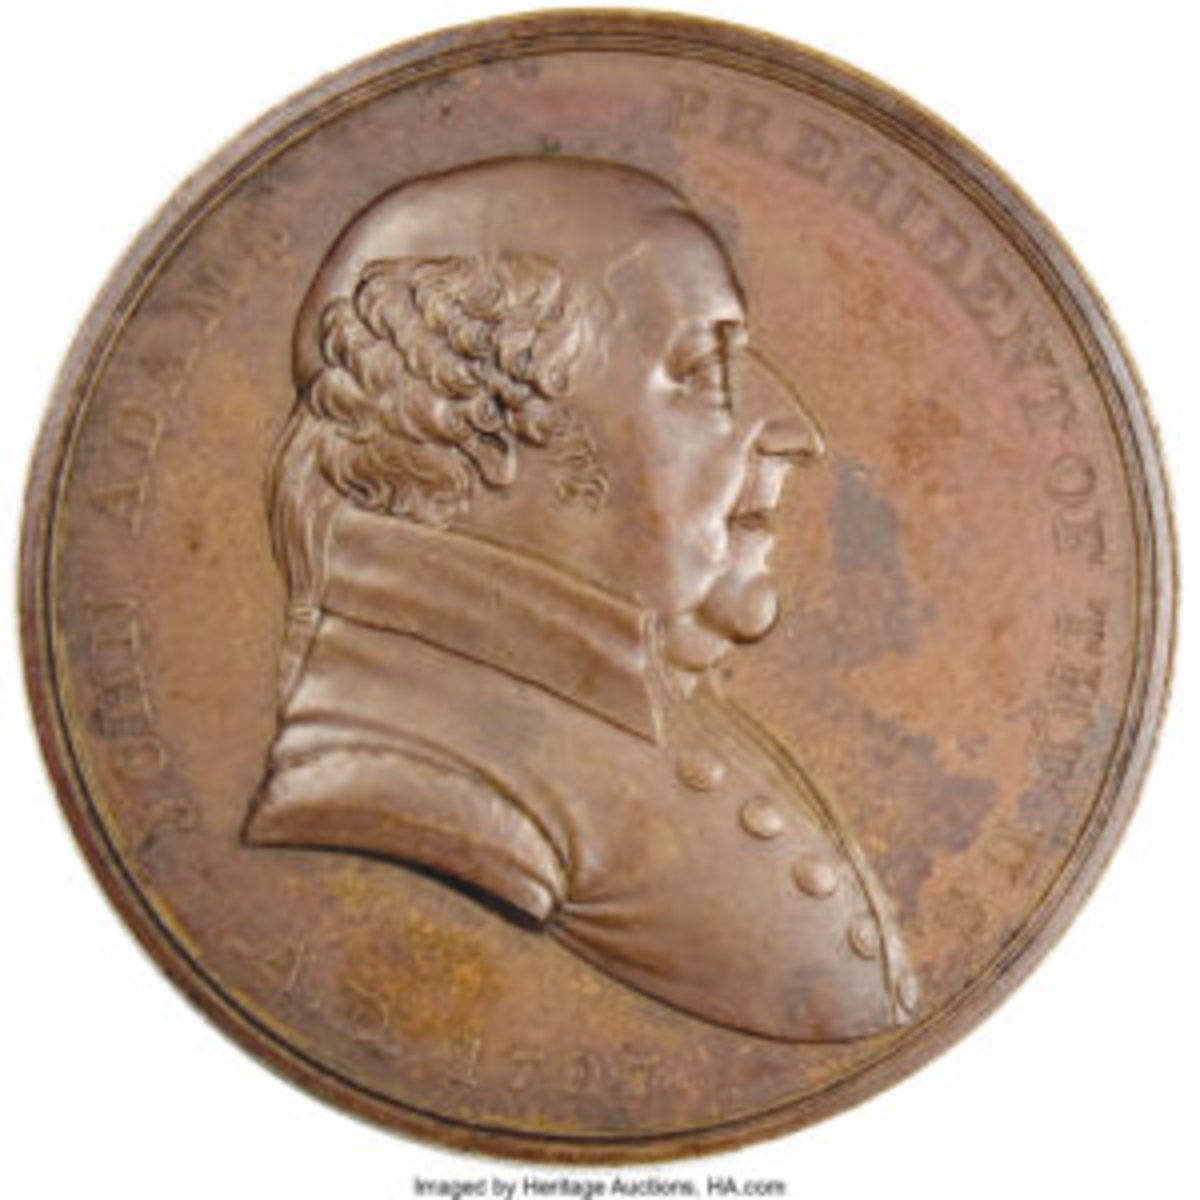 A large-size uncirculated 1797 John Adams Indian Peace Medal, bronzed copper 51mm, $373. Bust of Adams on face; reverse, hands clasped in the center, tomahawk and pipe intervening between PEACE AND FRIENDSHIP below.